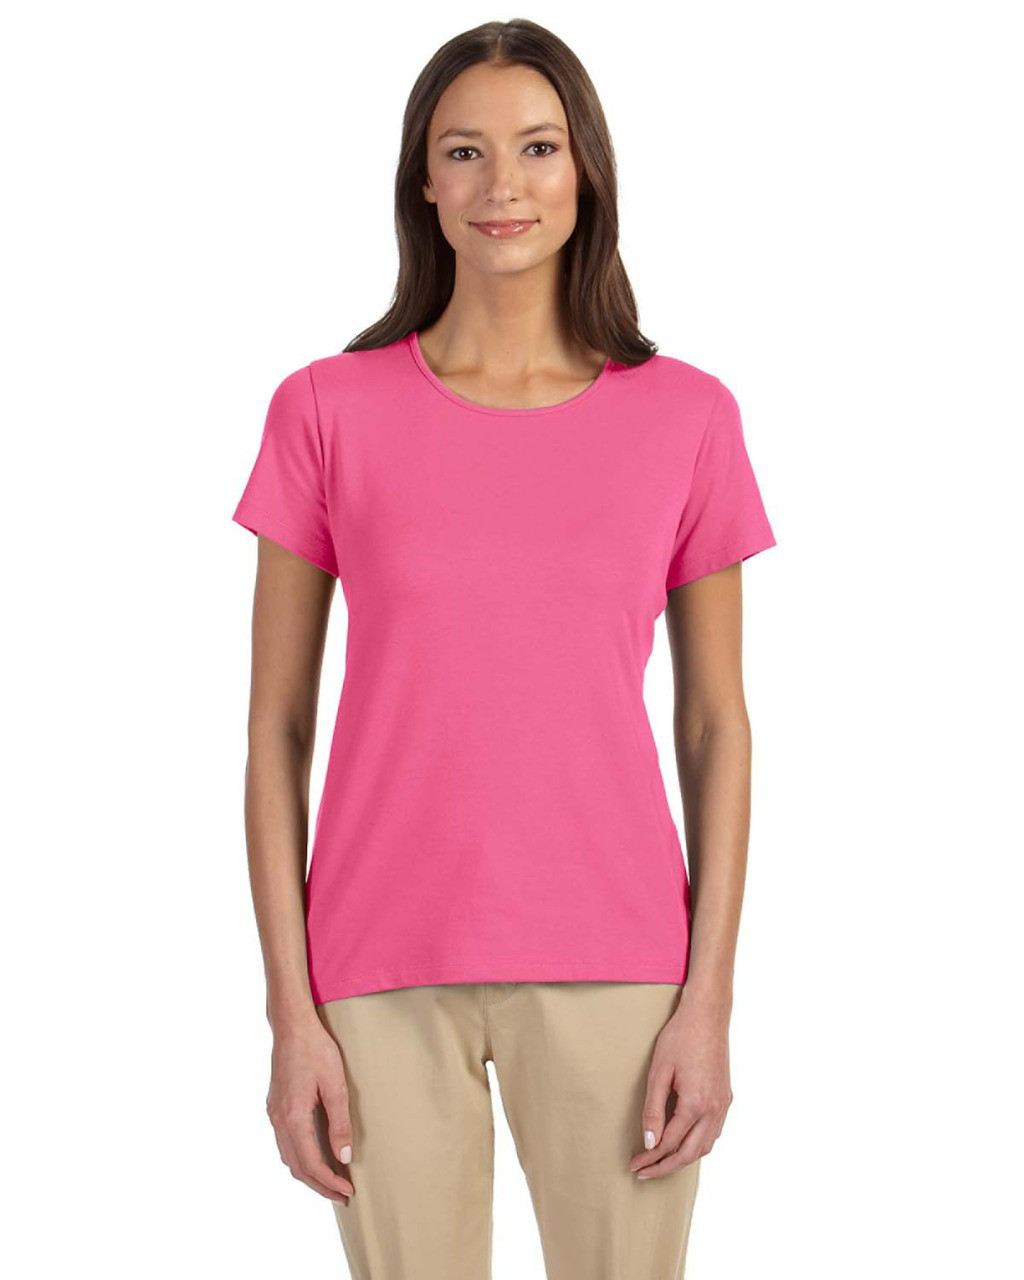 Charity Pink - DP182W Devon & Jones Ladies' Perfect Fit™ Shell T-Shirt | Blankclothing.ca